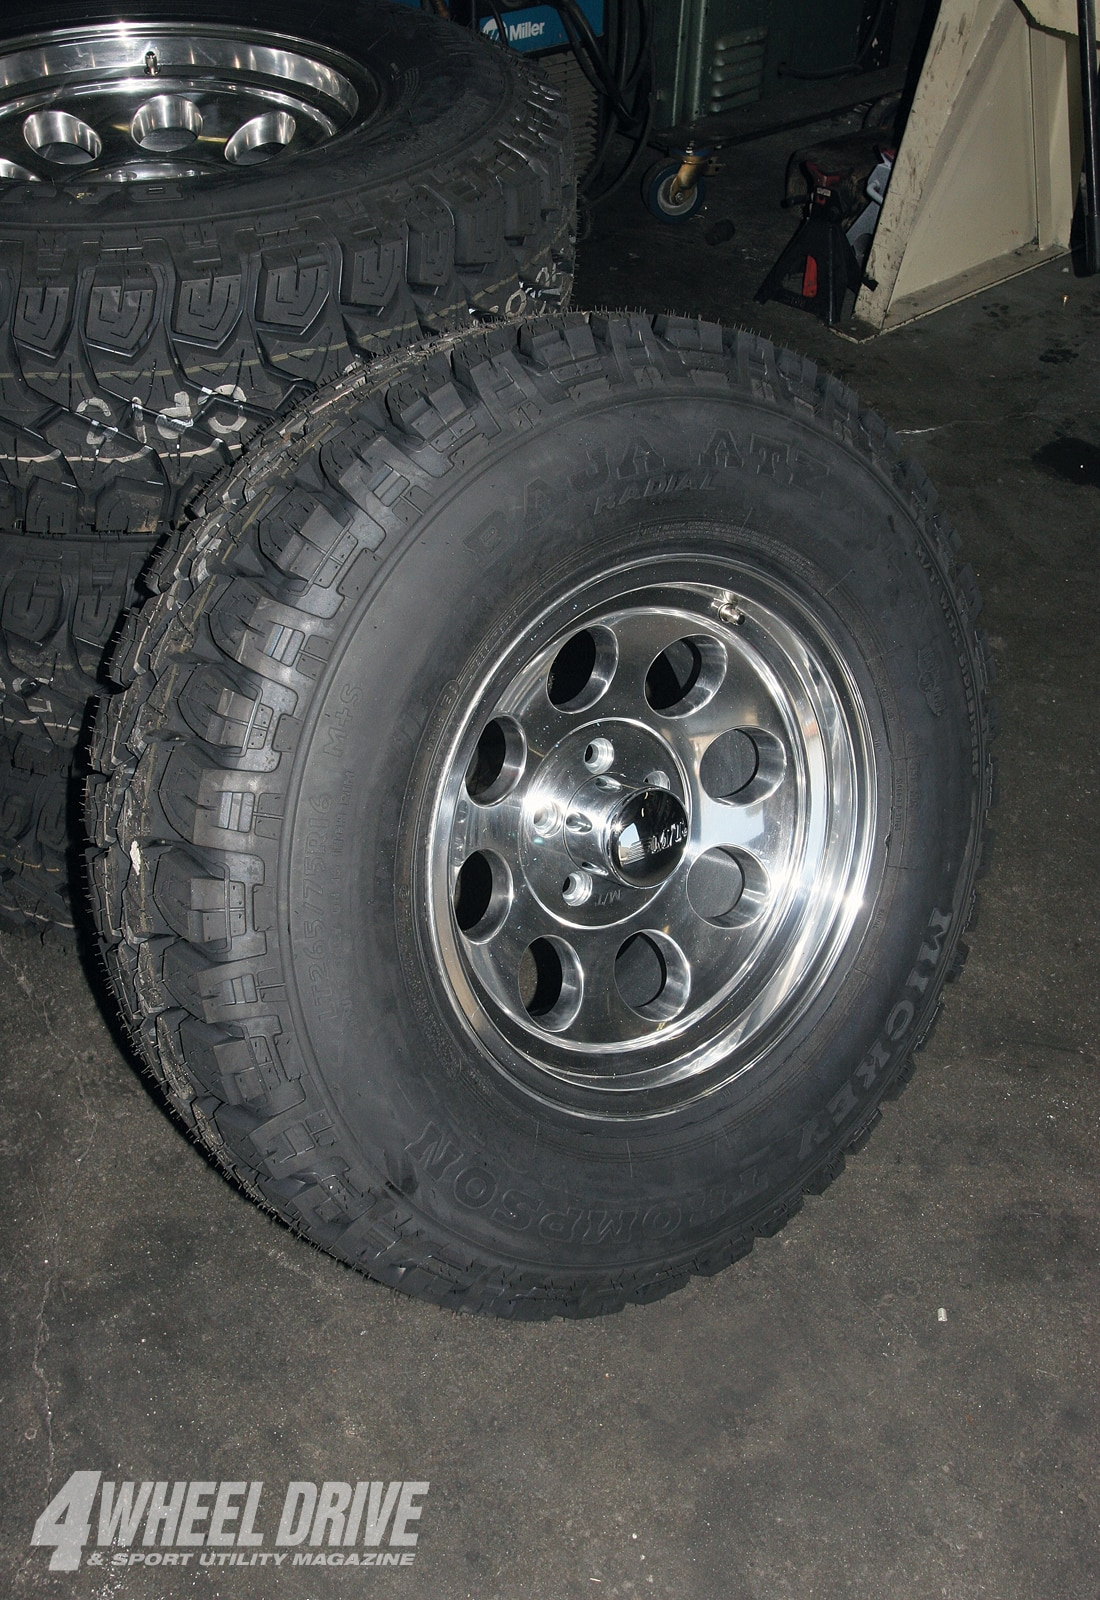 1003 4wd 06+1991 jeep cherokee xj unlimited buildup+mickey thompson tires